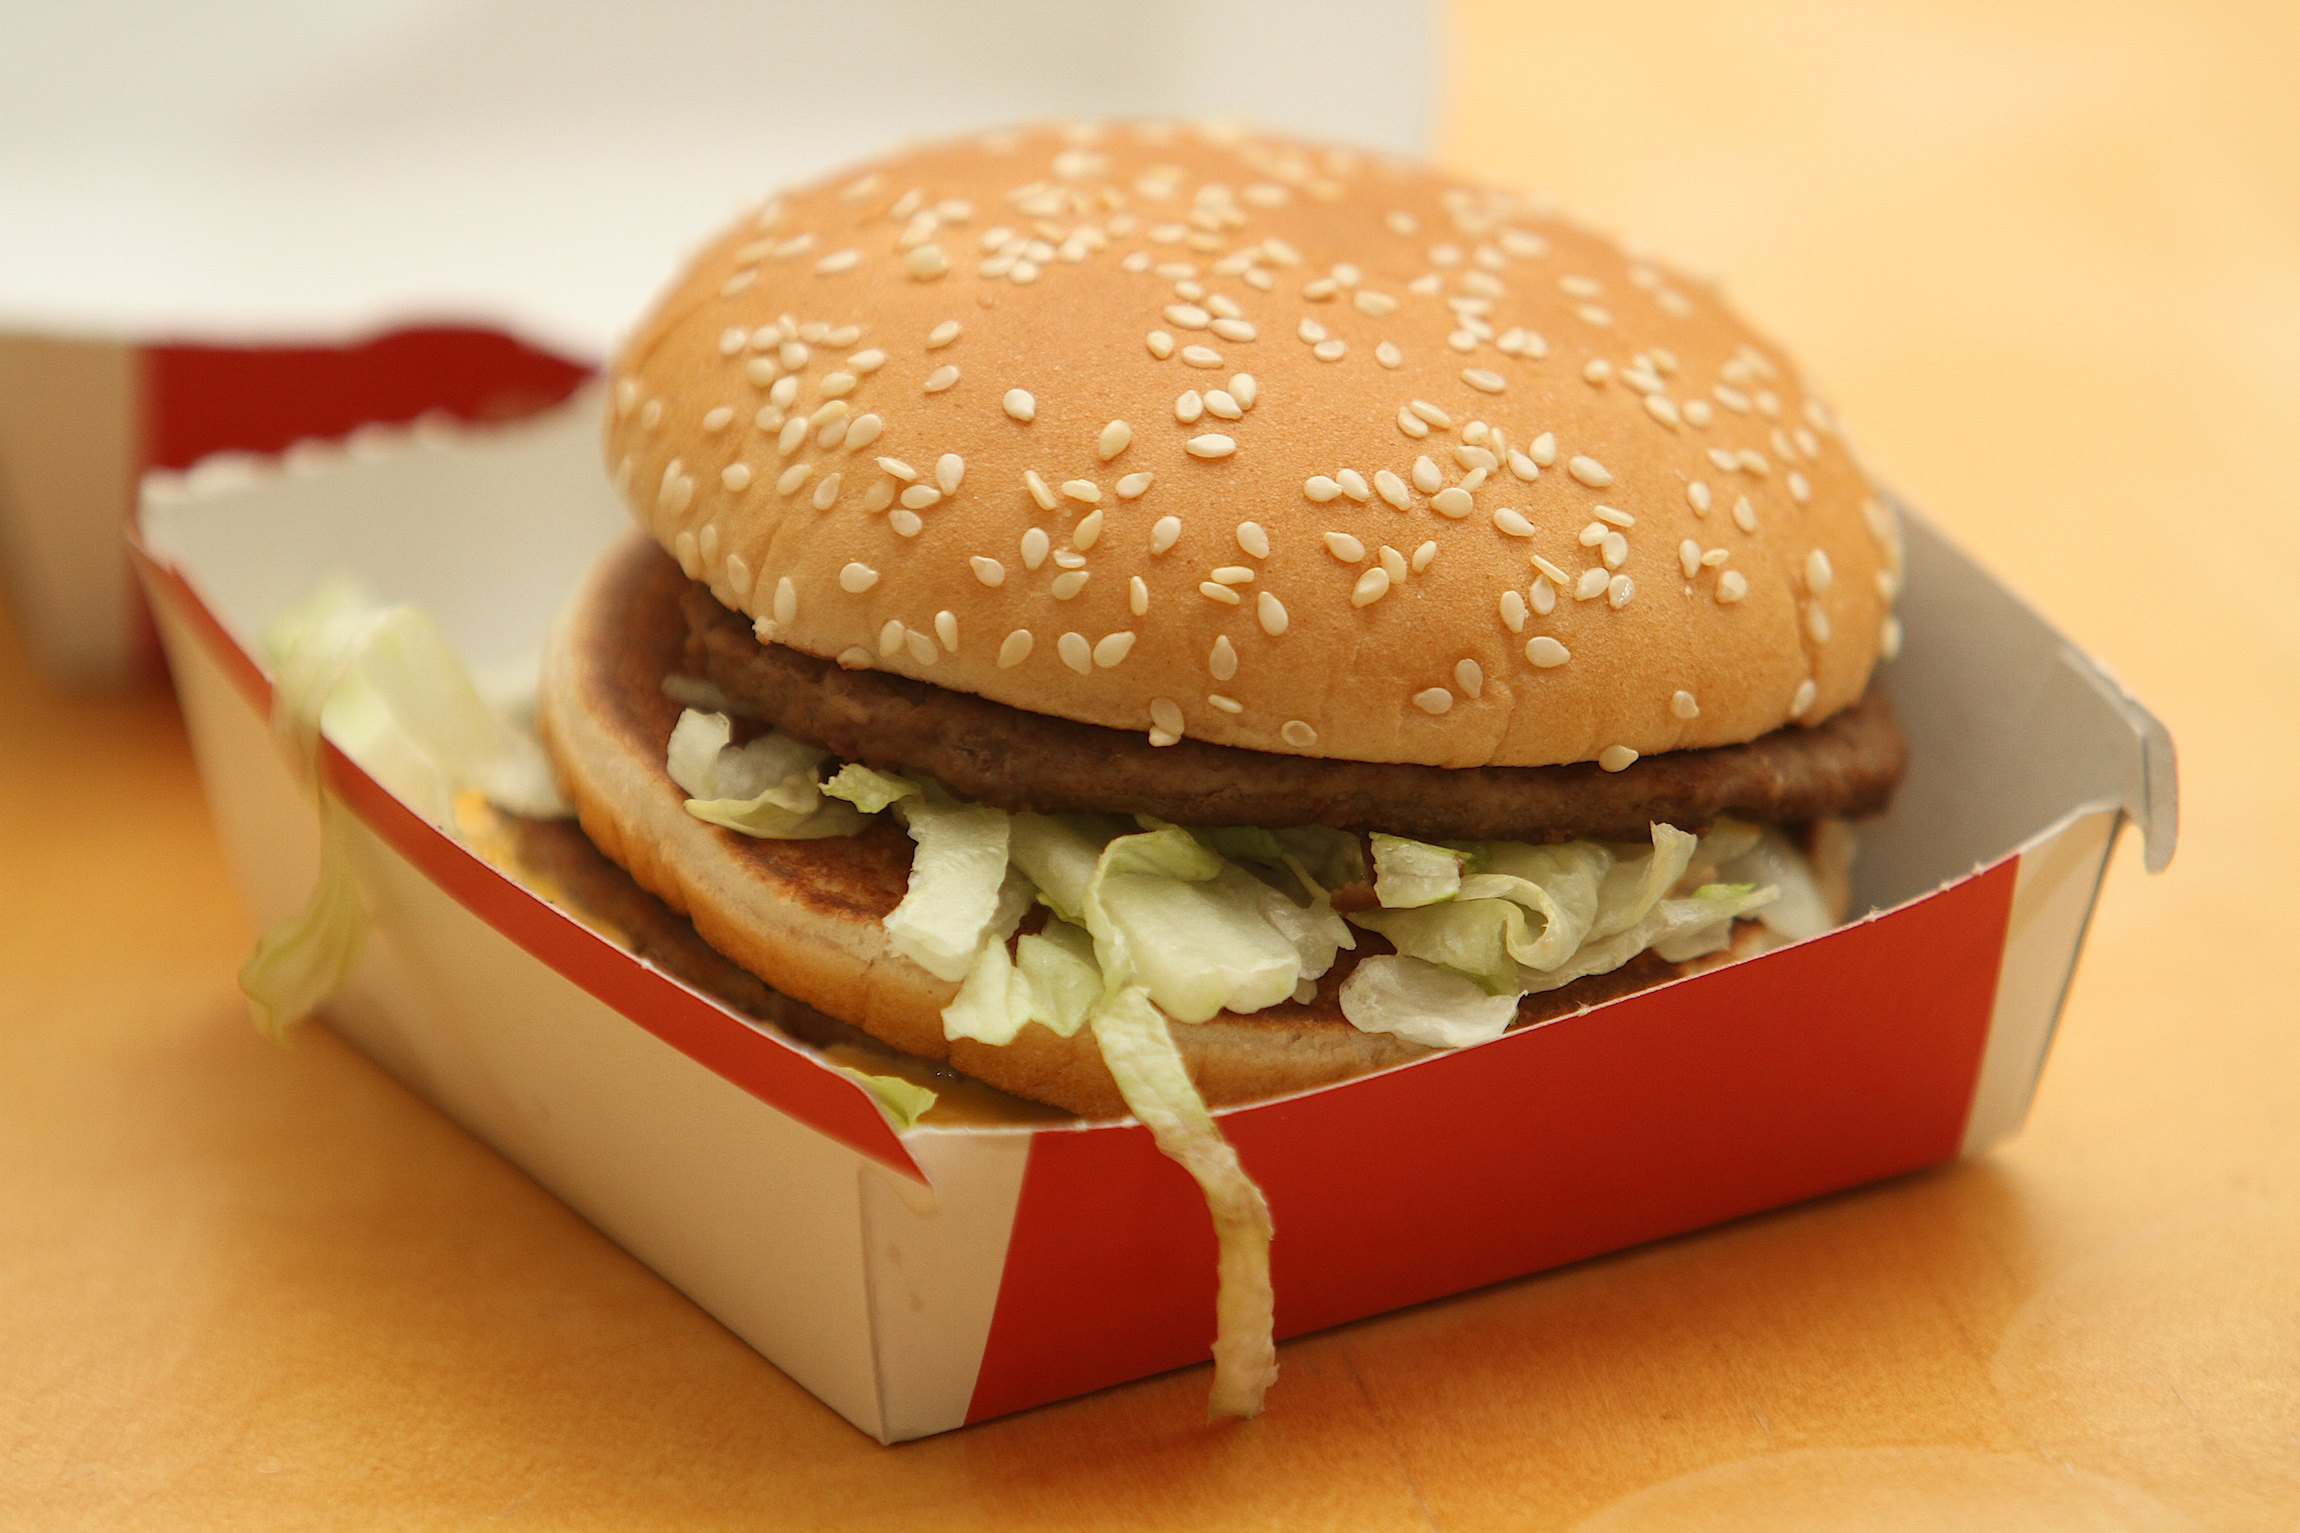 Allergic Expectant Mother Forced To Live On Big Macs